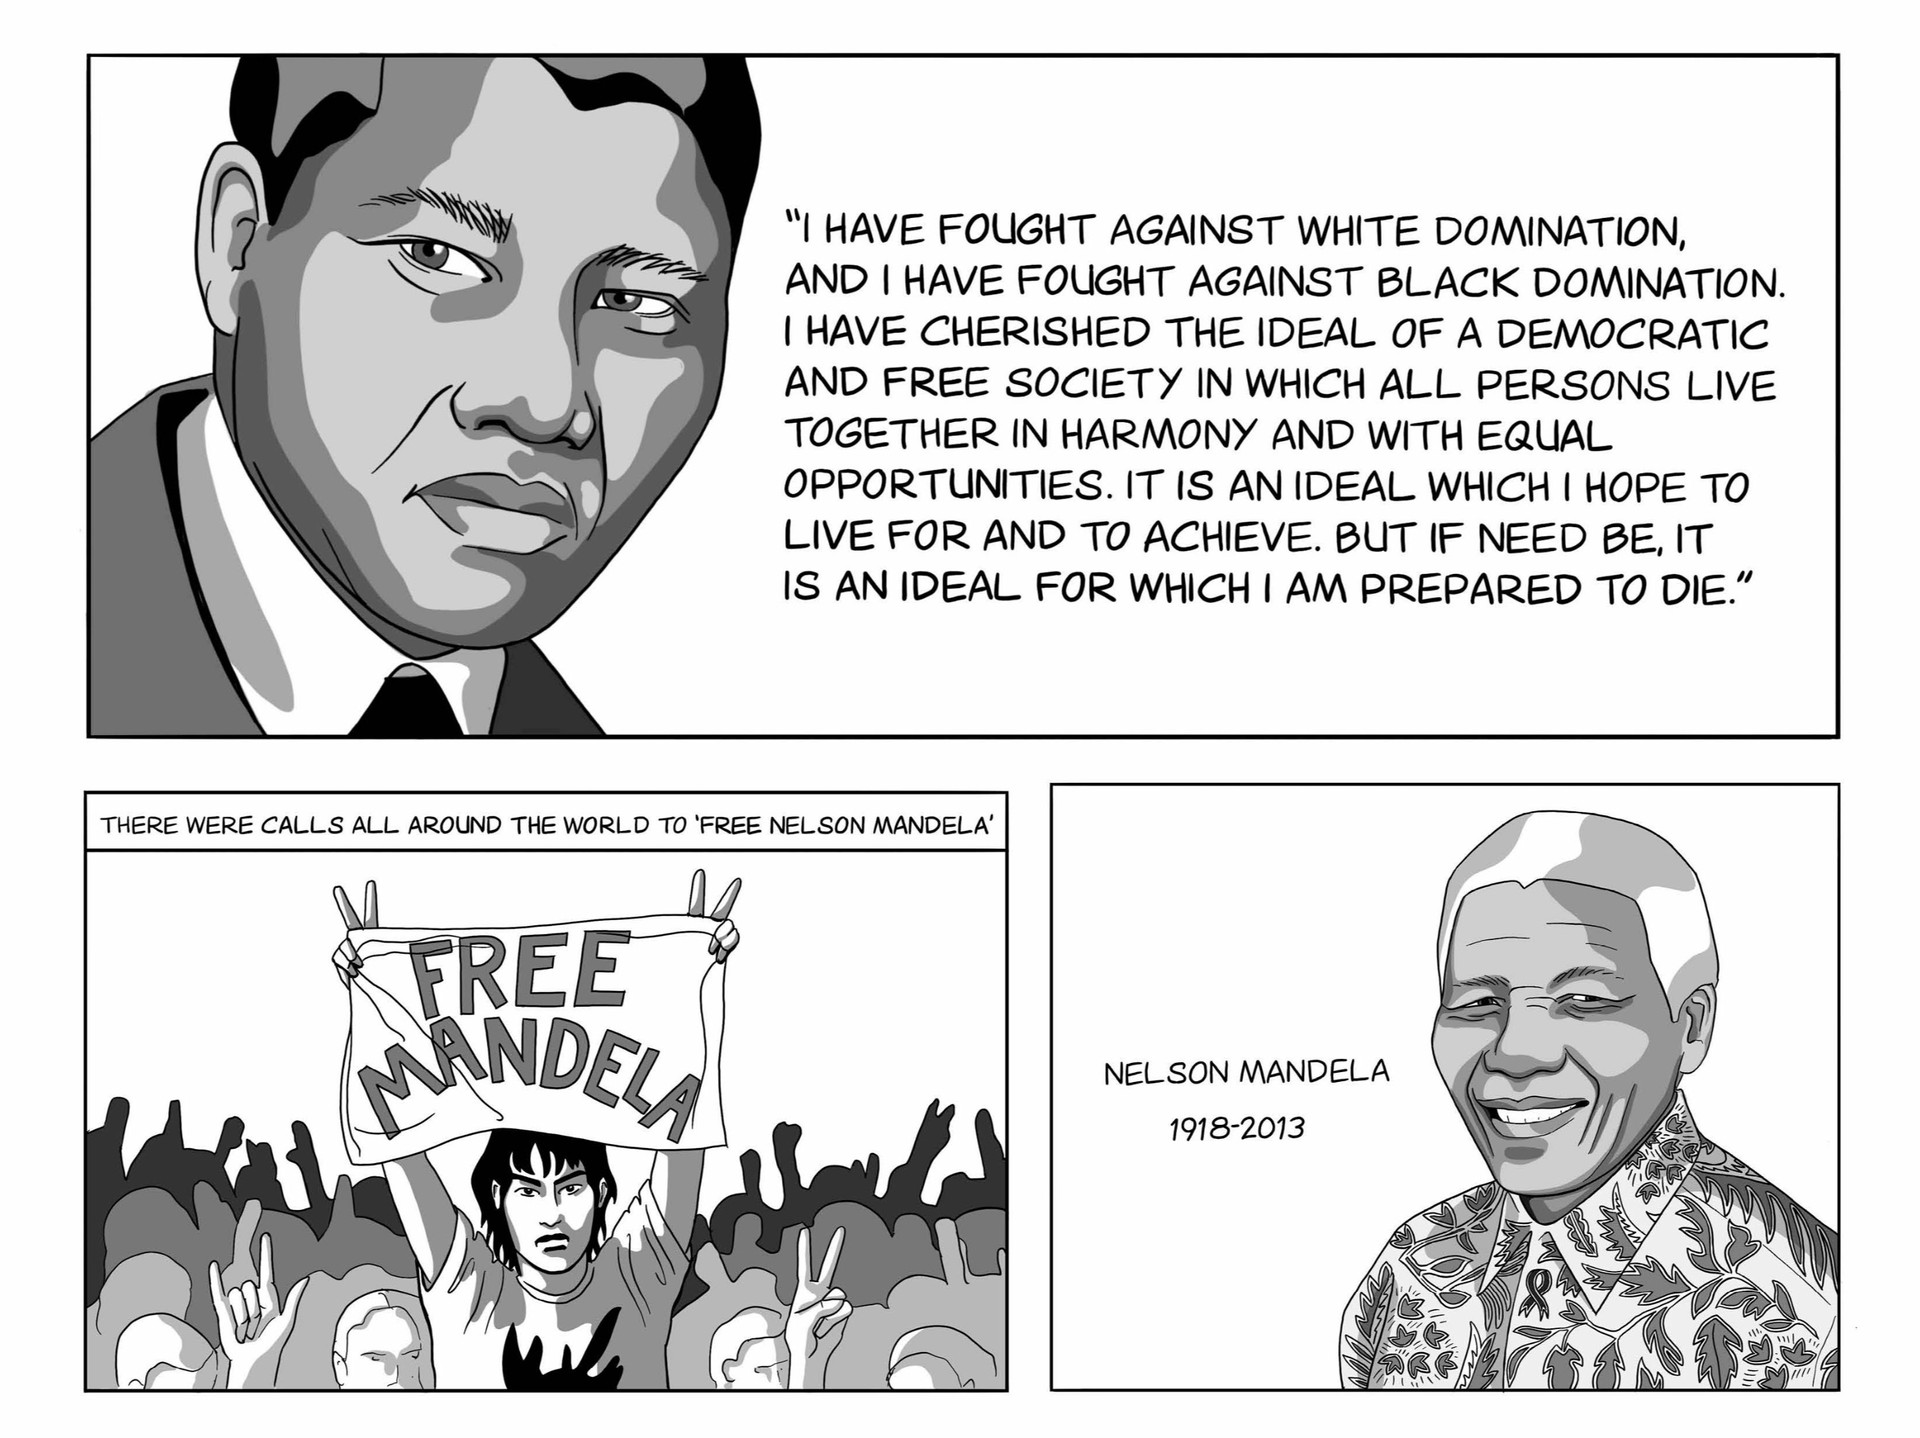 EDUCATIONAL CAMPAIGN - NELSON MANDELA